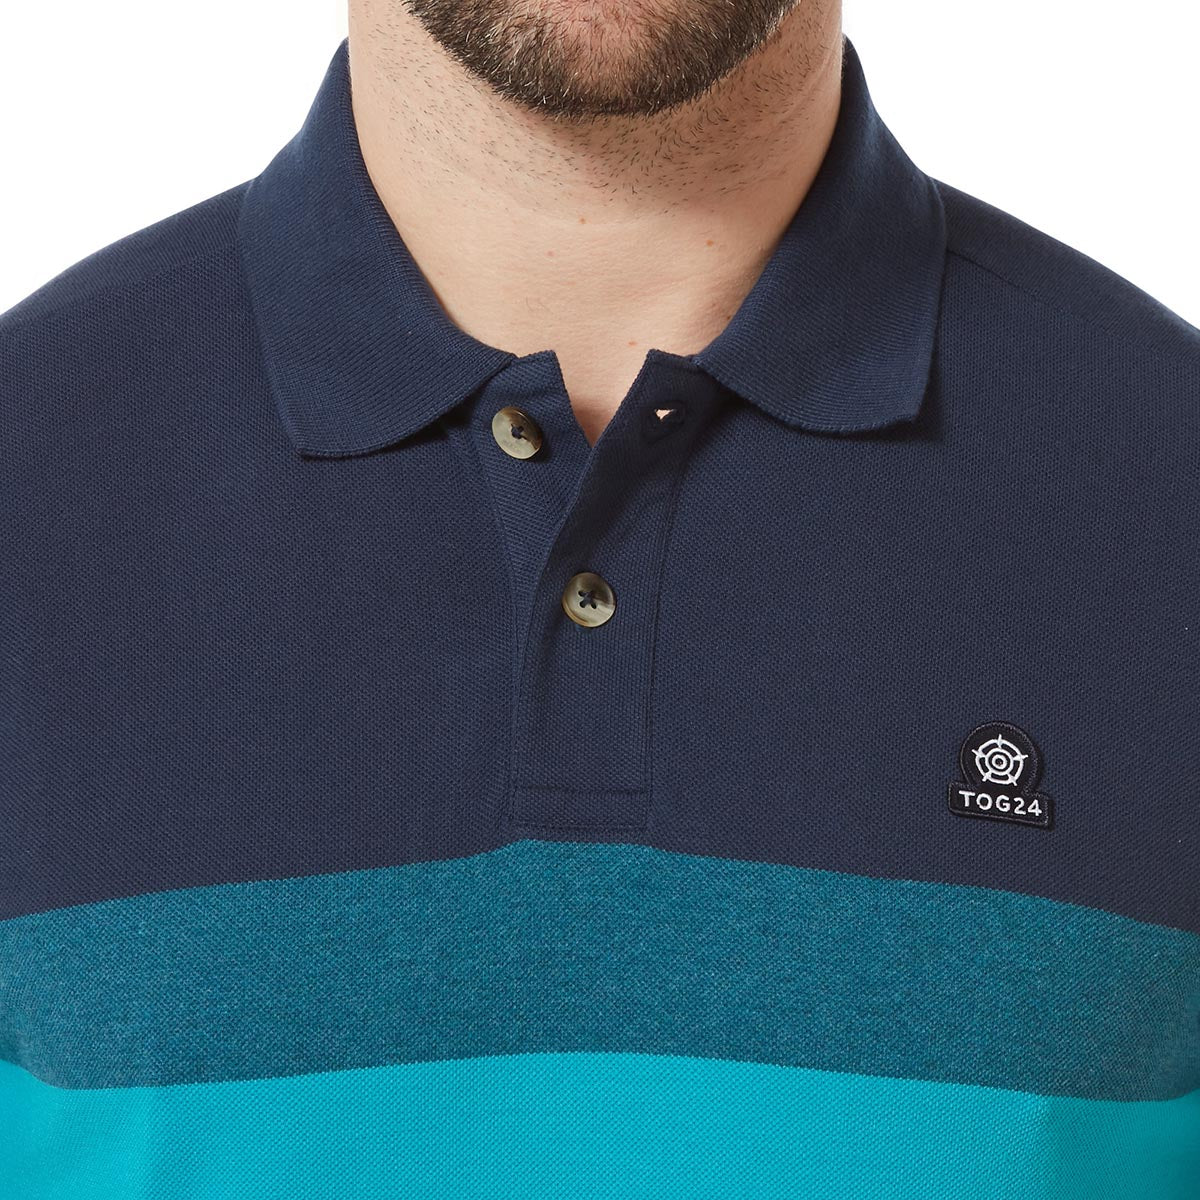 Derwent Mens Pique Stripe Polo - Blue Jewel Stripe image 4